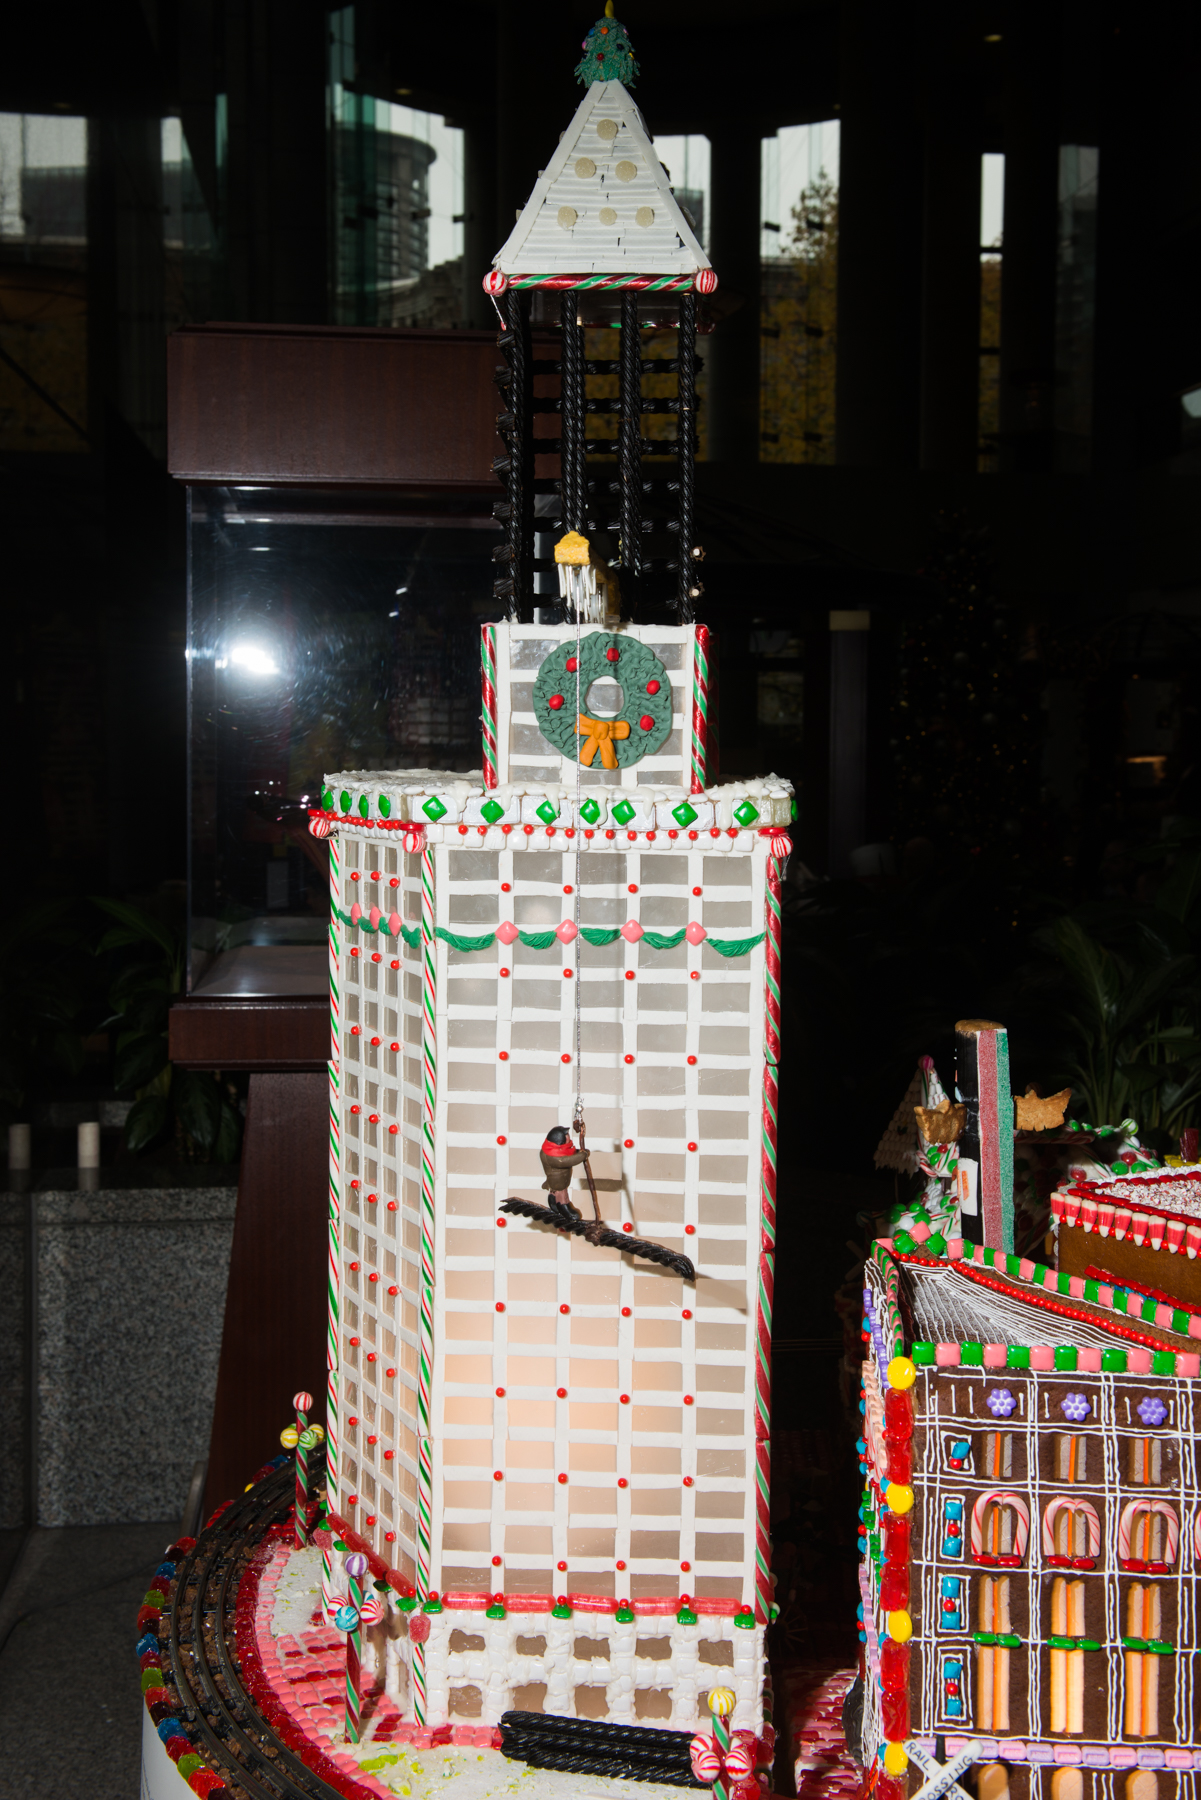 For 25 years, Seattle has embraced the Sheraton Seattle's Annual Gingerbread Village benefiting the Northwest Chapter of the Juvenile Diabetes Research Foundation. As a tribute to the city, the theme for the 25th Annual Gingerbread Village is 25 Years of Cheer: A Celebration of Seattle. Sheraton invites visitors to stroll through Seattle's cobblestone past and glimpse into its future, reflecting on what makes the city special. The village is free, with donations benefitting JDRF Northwest Chapter. The Village opens to the public on November 21 and runs through January 1, 2018. This year, Gingerbread Village will be located across the street from the Sheraton at the City Centre building. For the first time, the public will be able to view part of the displays from the street. (Image: Chona Kasinger / Seattle Refined)